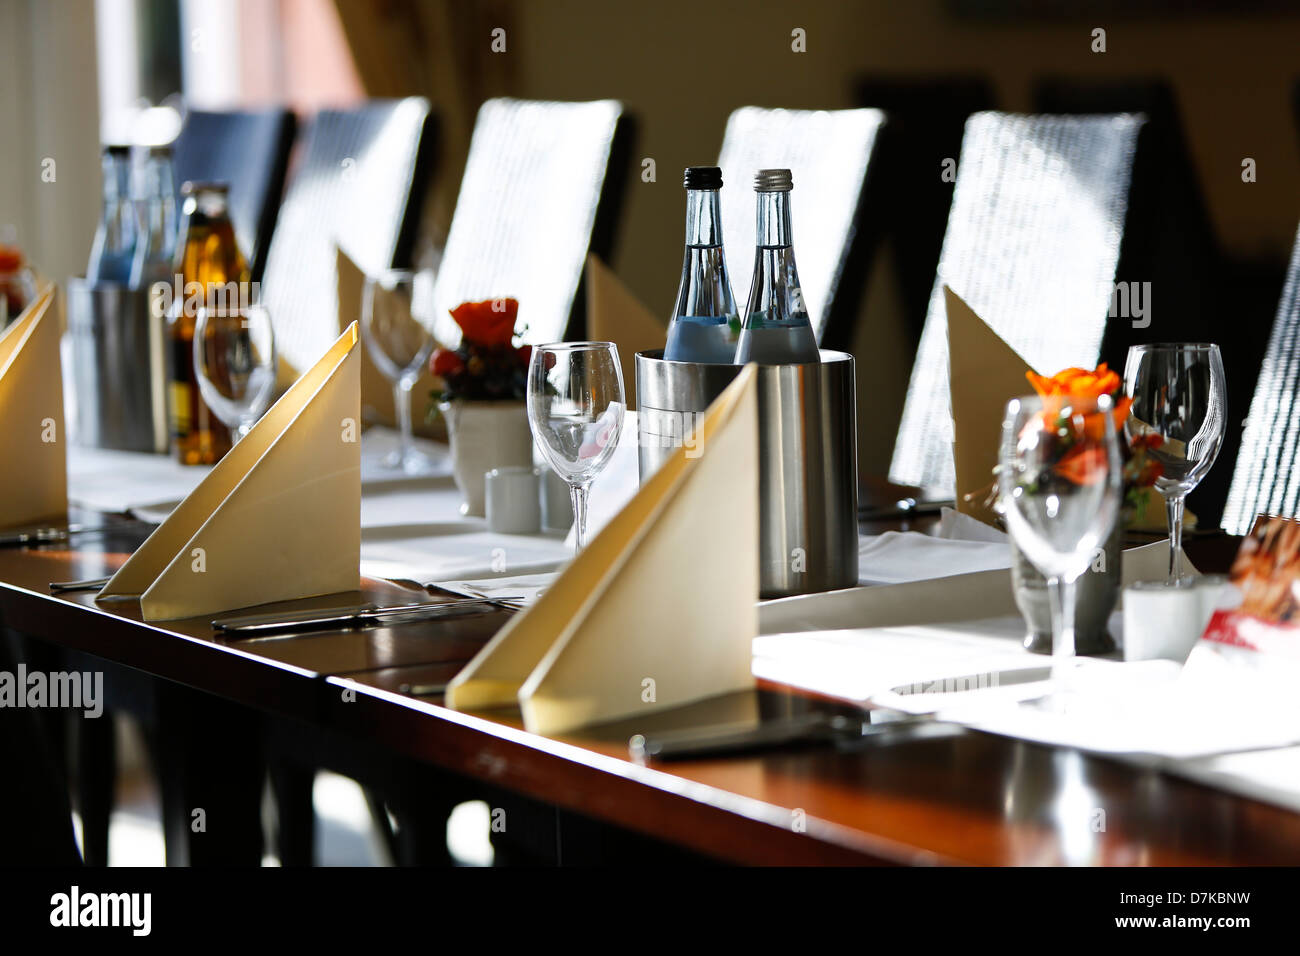 Germany, Baden Wuerttemberg, Heidelberg, Table laid with wine bottles and glasses - Stock Image